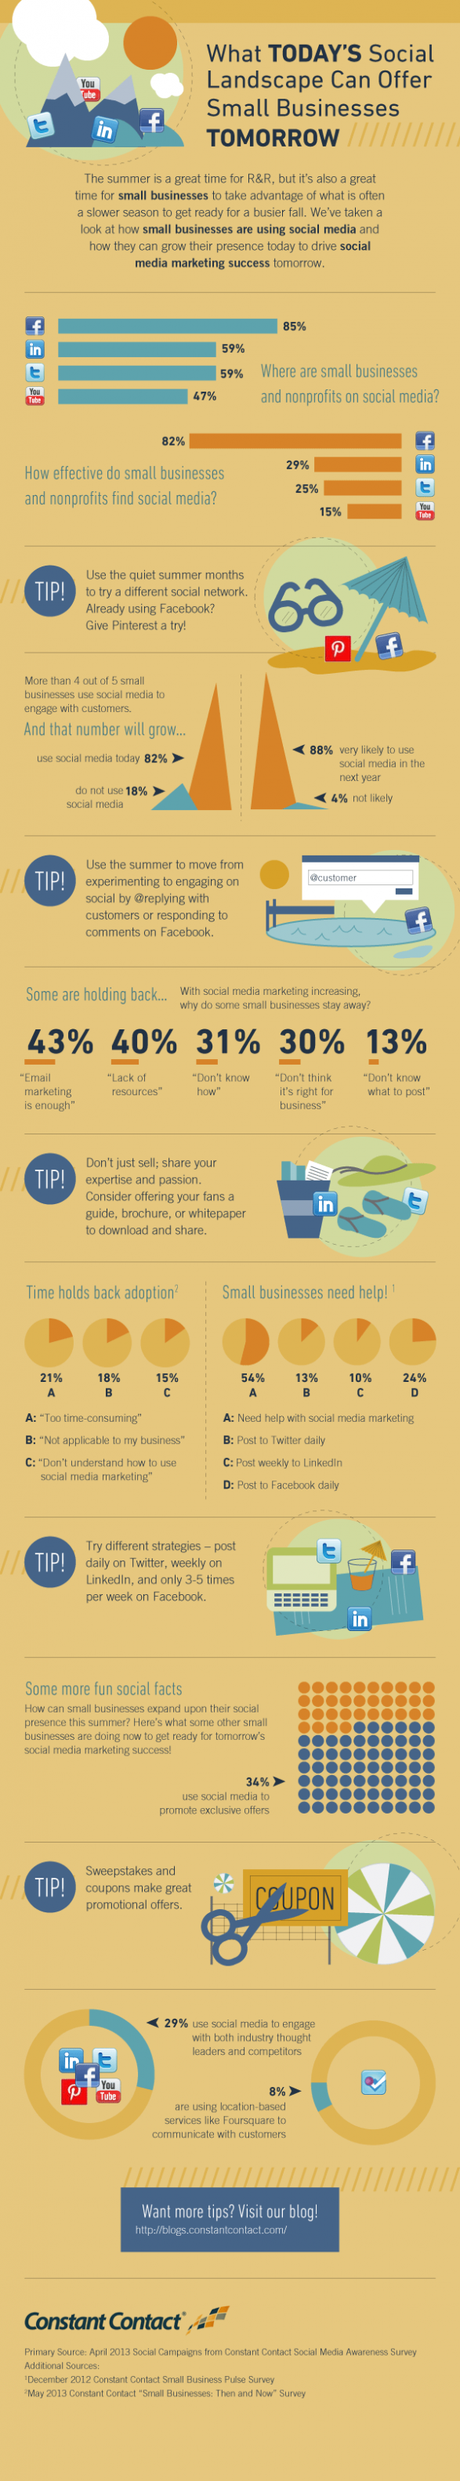 What Today's Social Landscape Can Offer Small Businesses Tomorrow (Infographic)